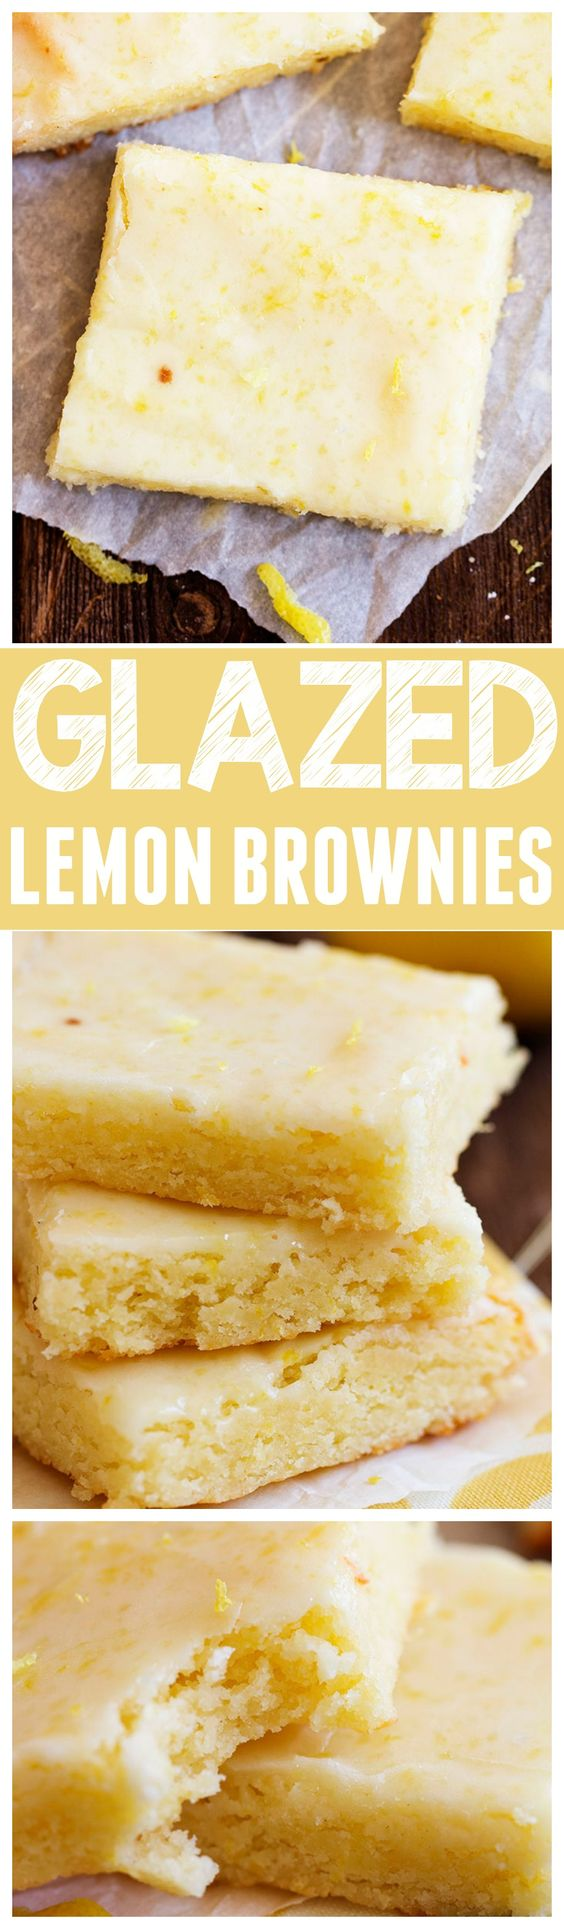 Glazed Lemon Brownies Recipe via The Recipe Critic - These are perfectly moist and chewy and the glaze on top is AMAZING! You won't be able to stop eating them! The BEST Easy Lemon Desserts and Treats Recipes - Perfect For Easter, Mother's Day Brunch, Bridal or Baby Showers and Pretty Spring and Summer Holiday Party Refreshments! #lemondesserts #lemonrecipes #easylemonrecipes #lemon #lemontreats #easterdesserts #mothersdaydesserts #springdesserts #holidaydesserts #summerdesserts